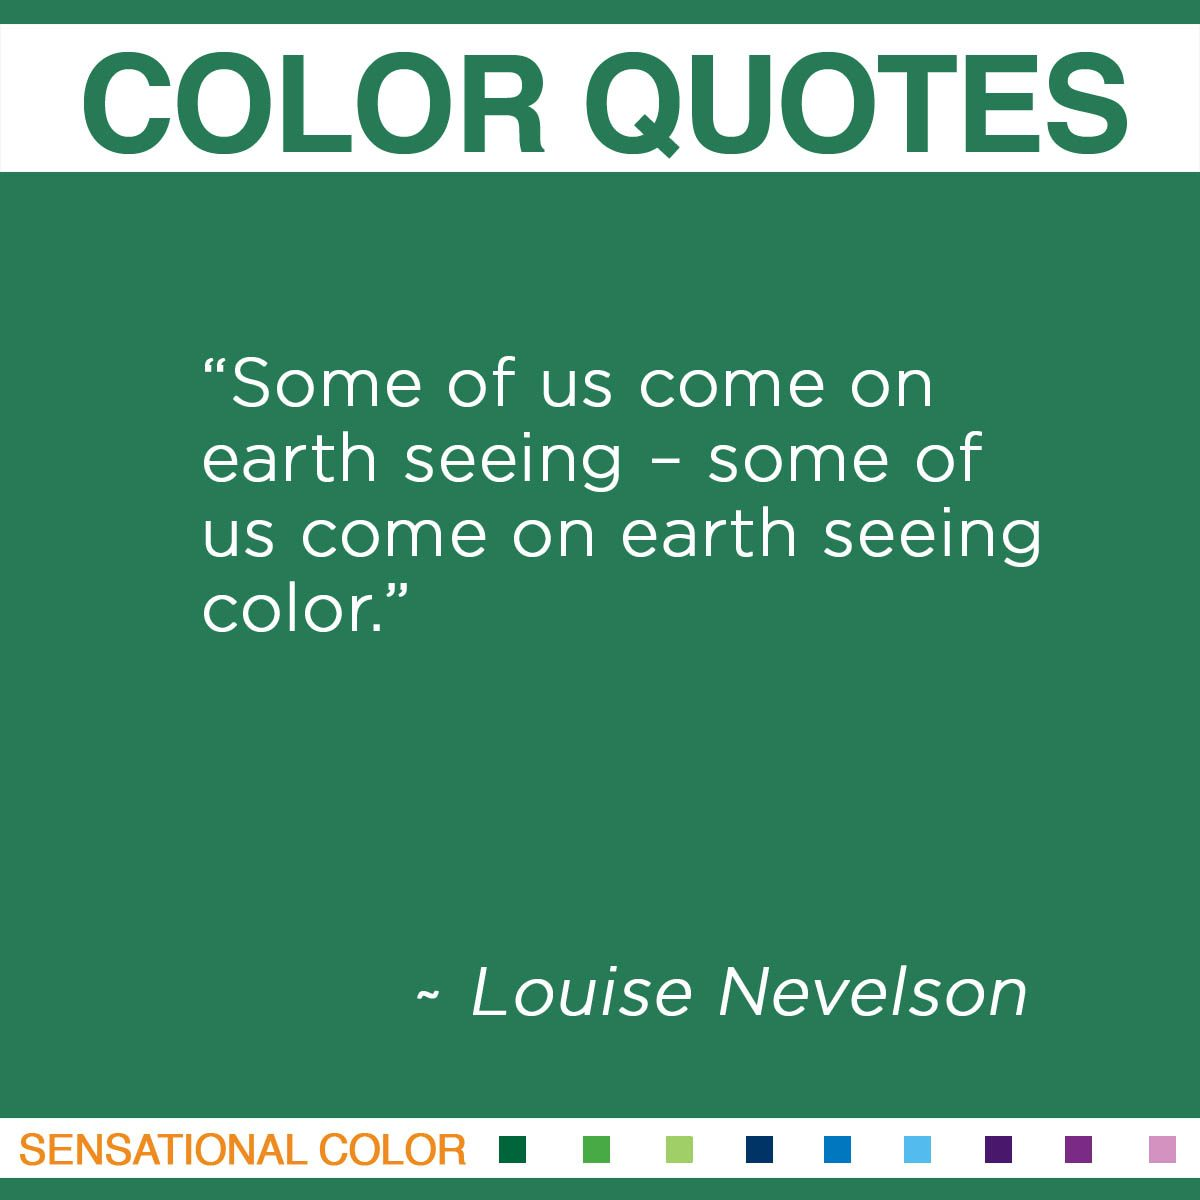 """Some of us come on earth seeing – some of us come on earth seeing color."" - Louise Nevelson"